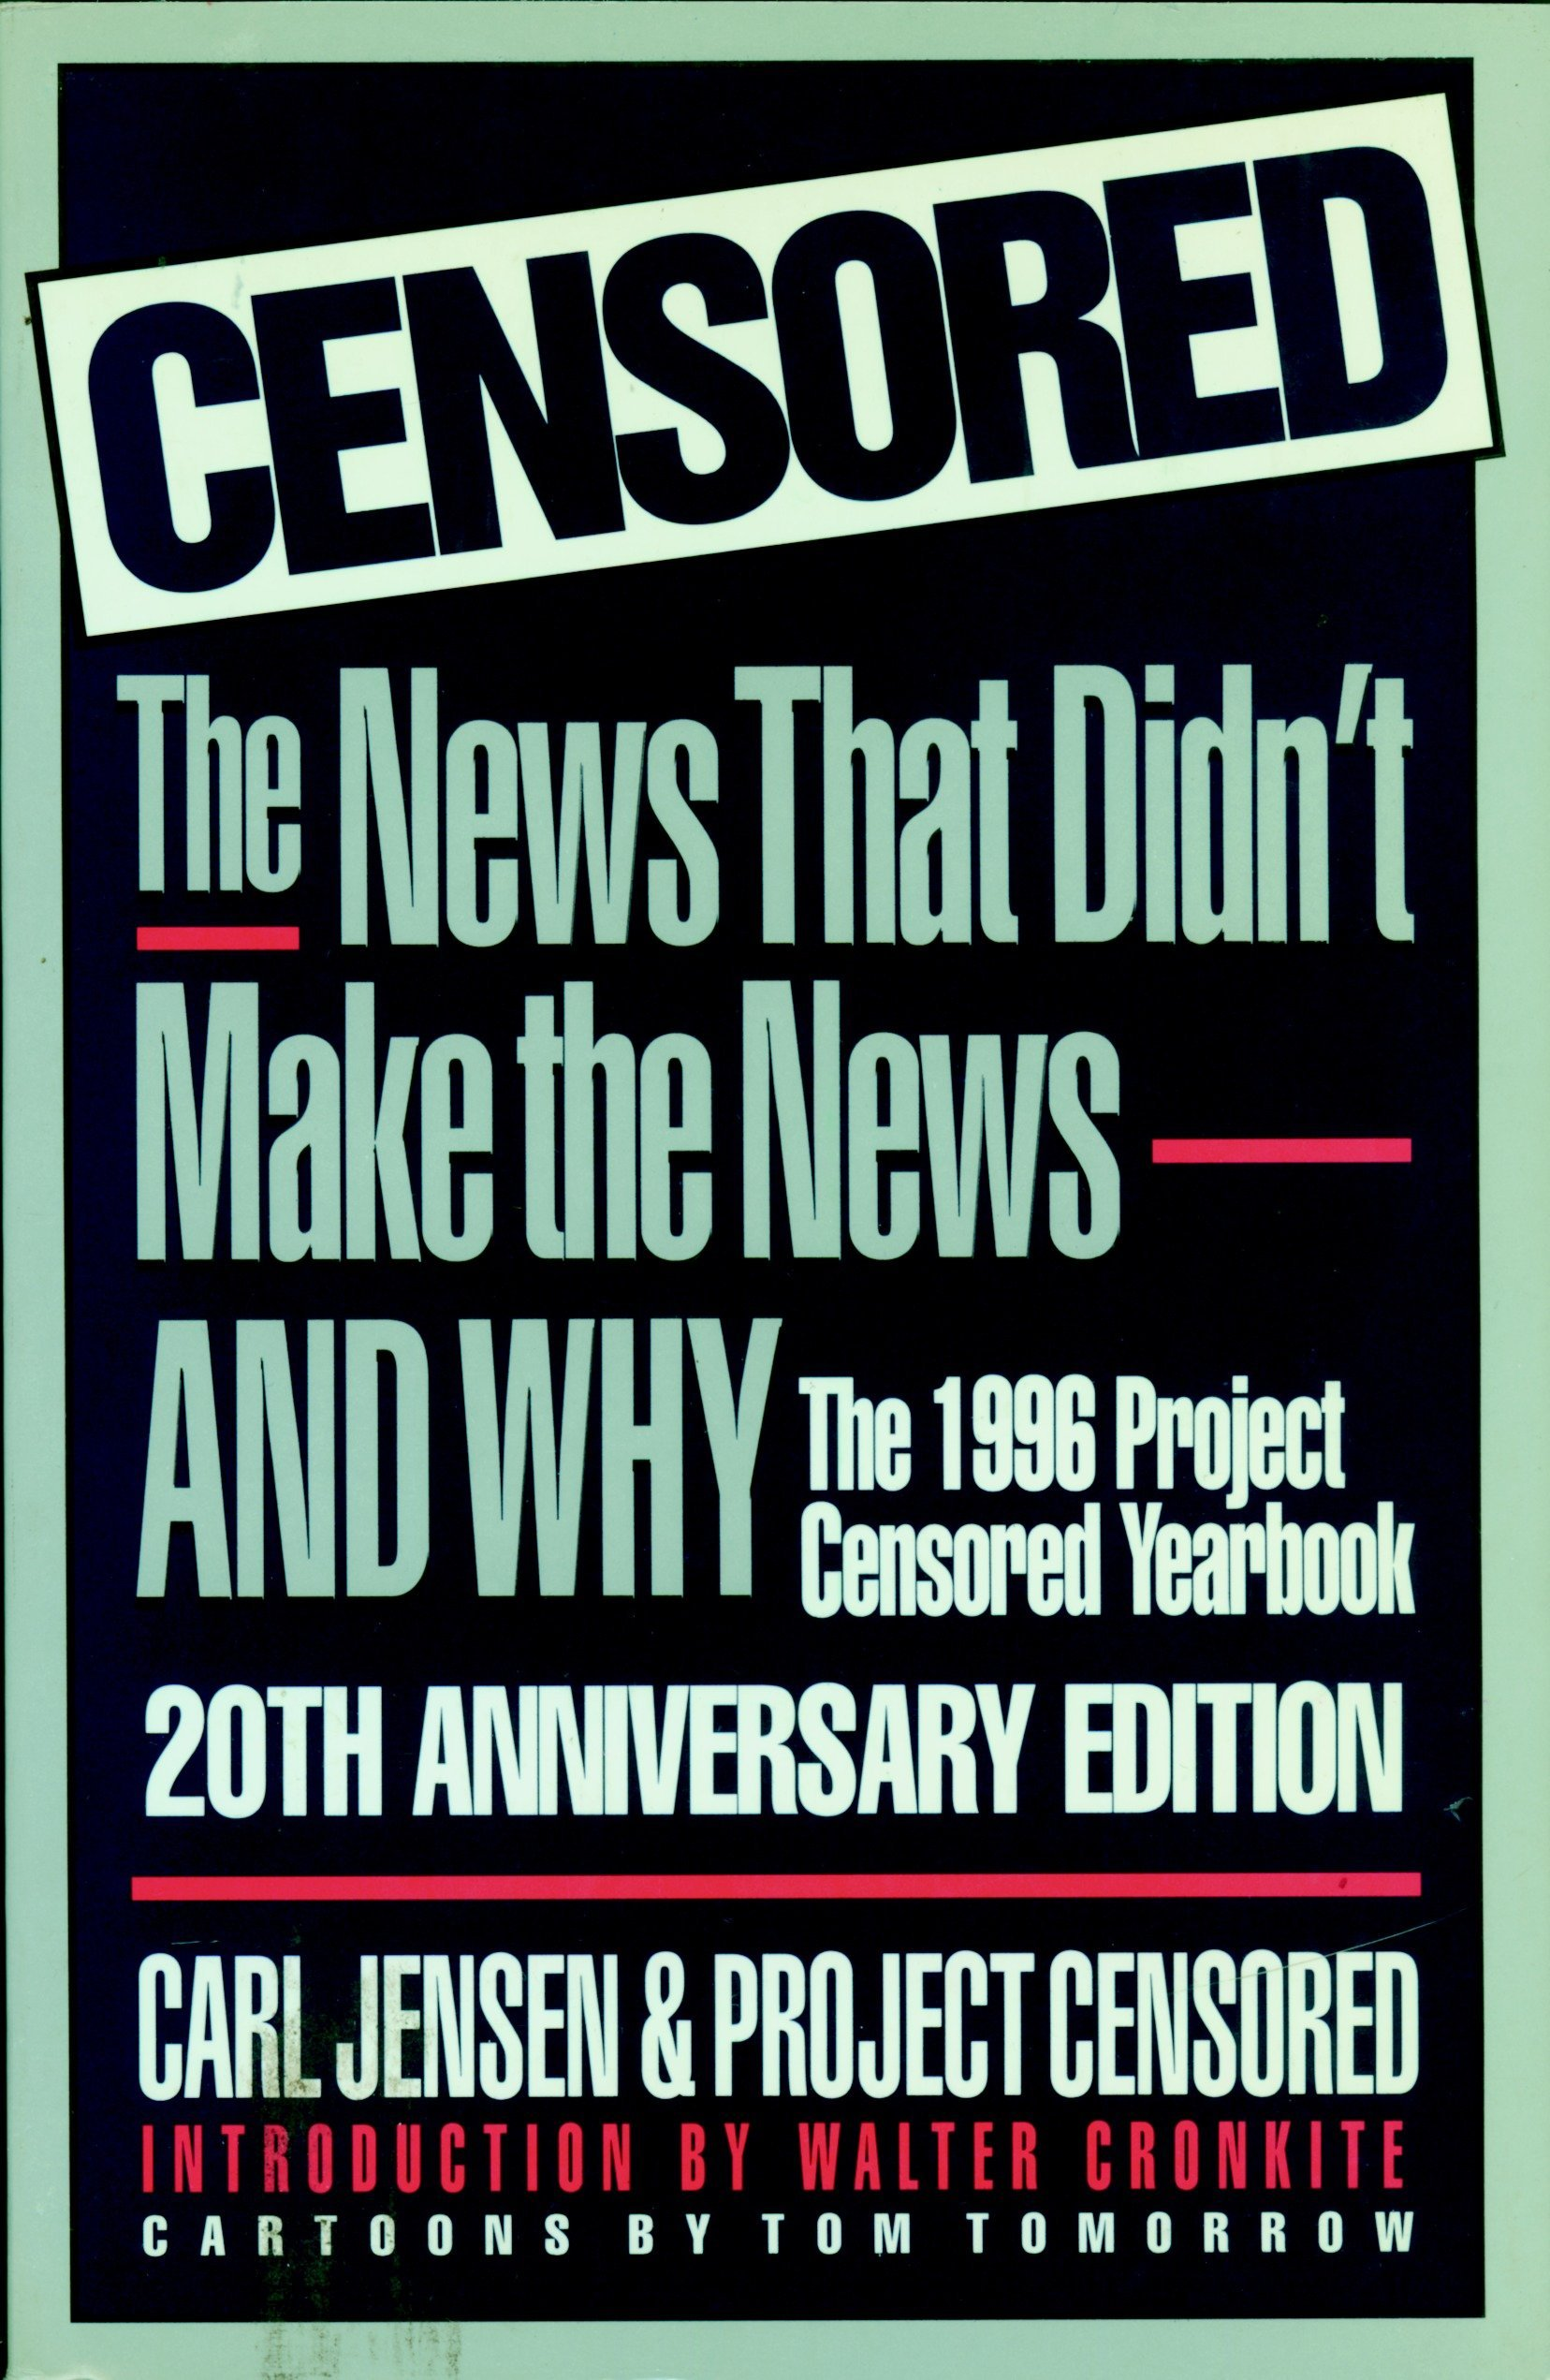 Download Censored 1996: The 1996 Project Censored Yearbook (Censored: The News That Didn't Make the News -- The Year's Top 25 Censored Stories) pdf